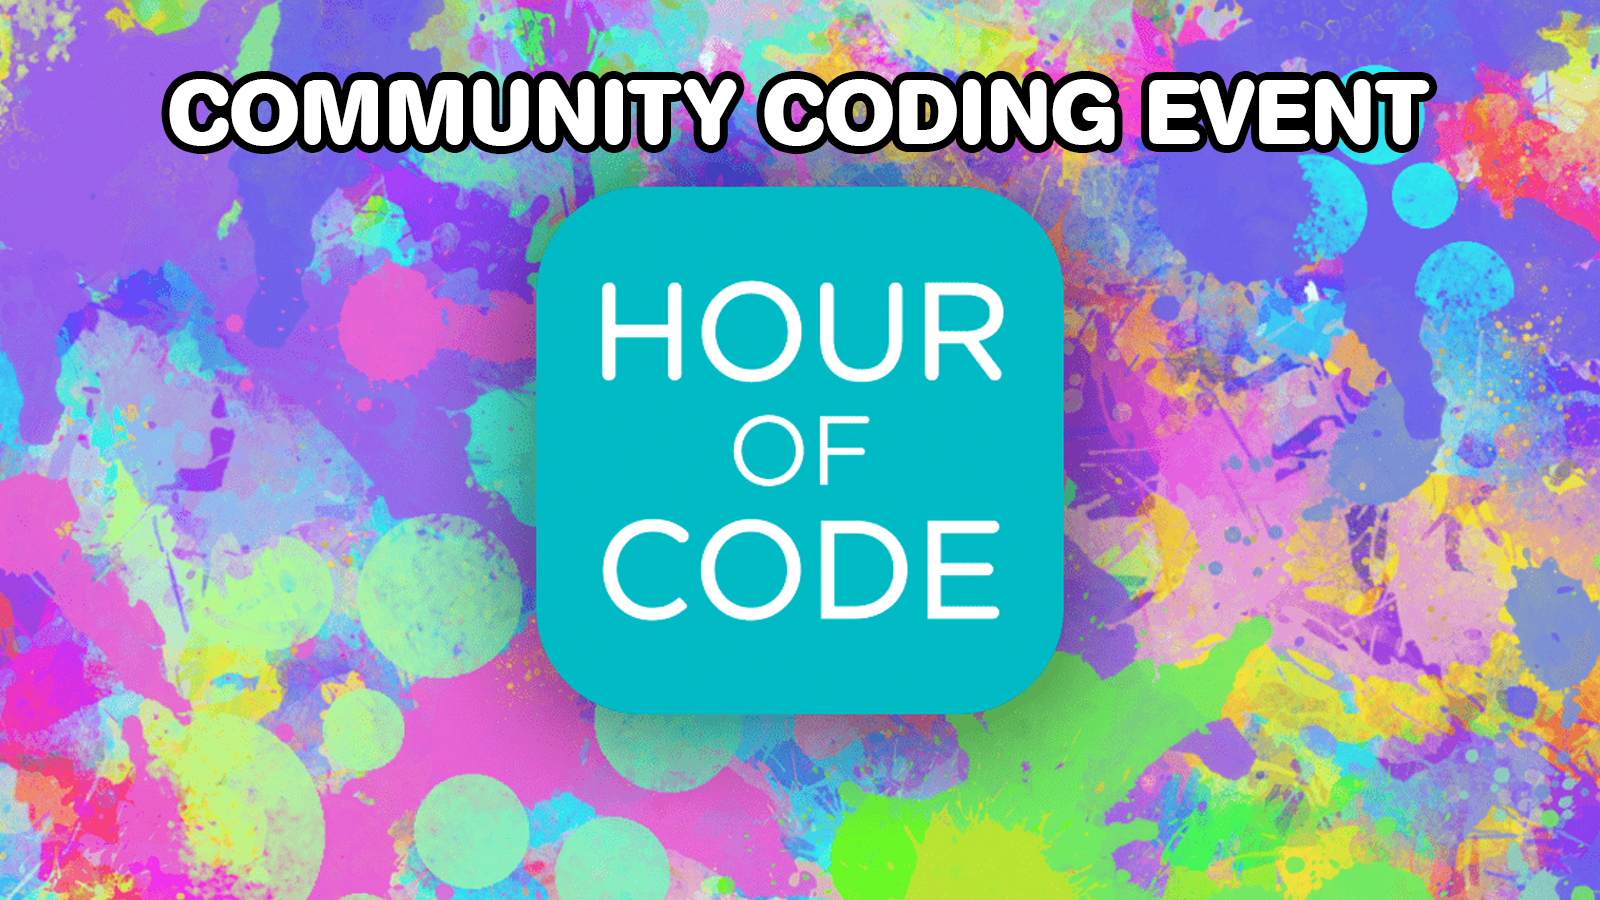 Hour of Code Community Event